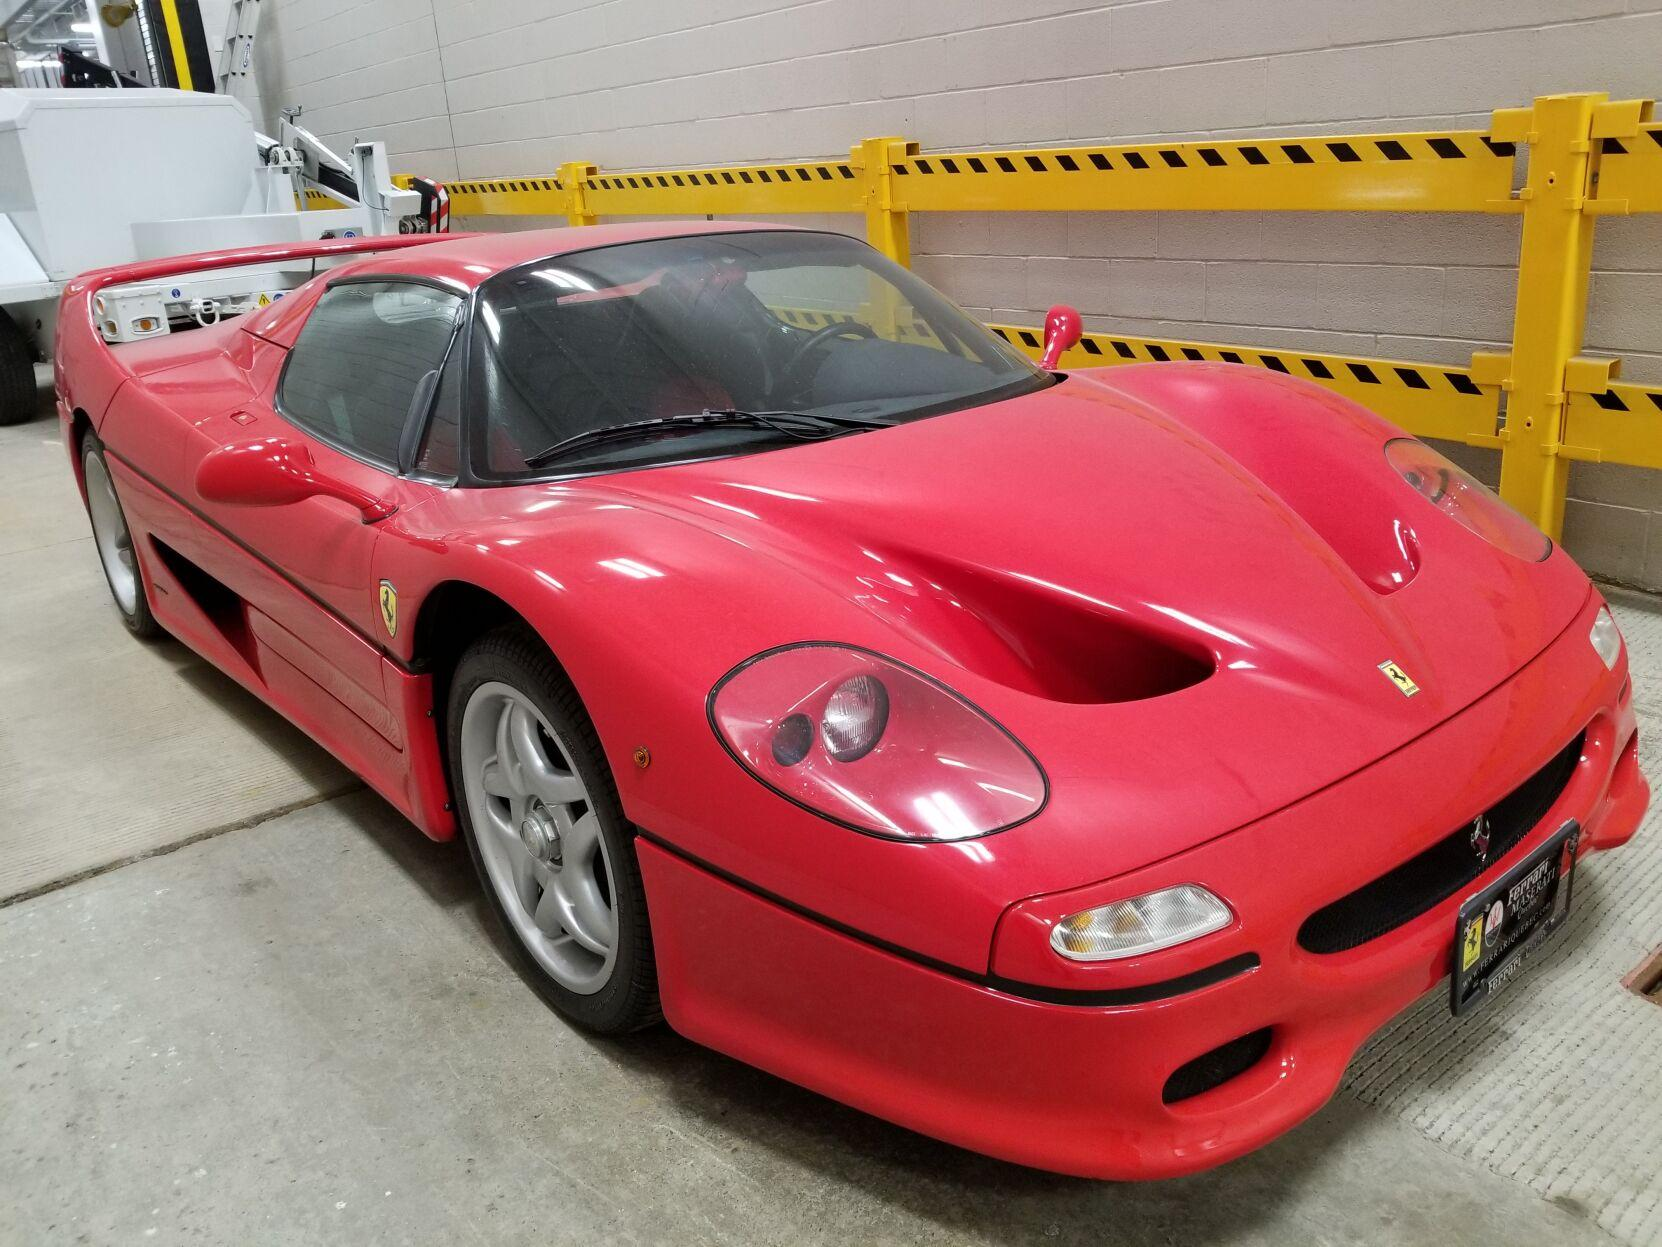 Fate Of Stolen 2m Ferrari In Buffalo Court Home To Italy Or To A Florida Car Collection Local News Buffalonews Com